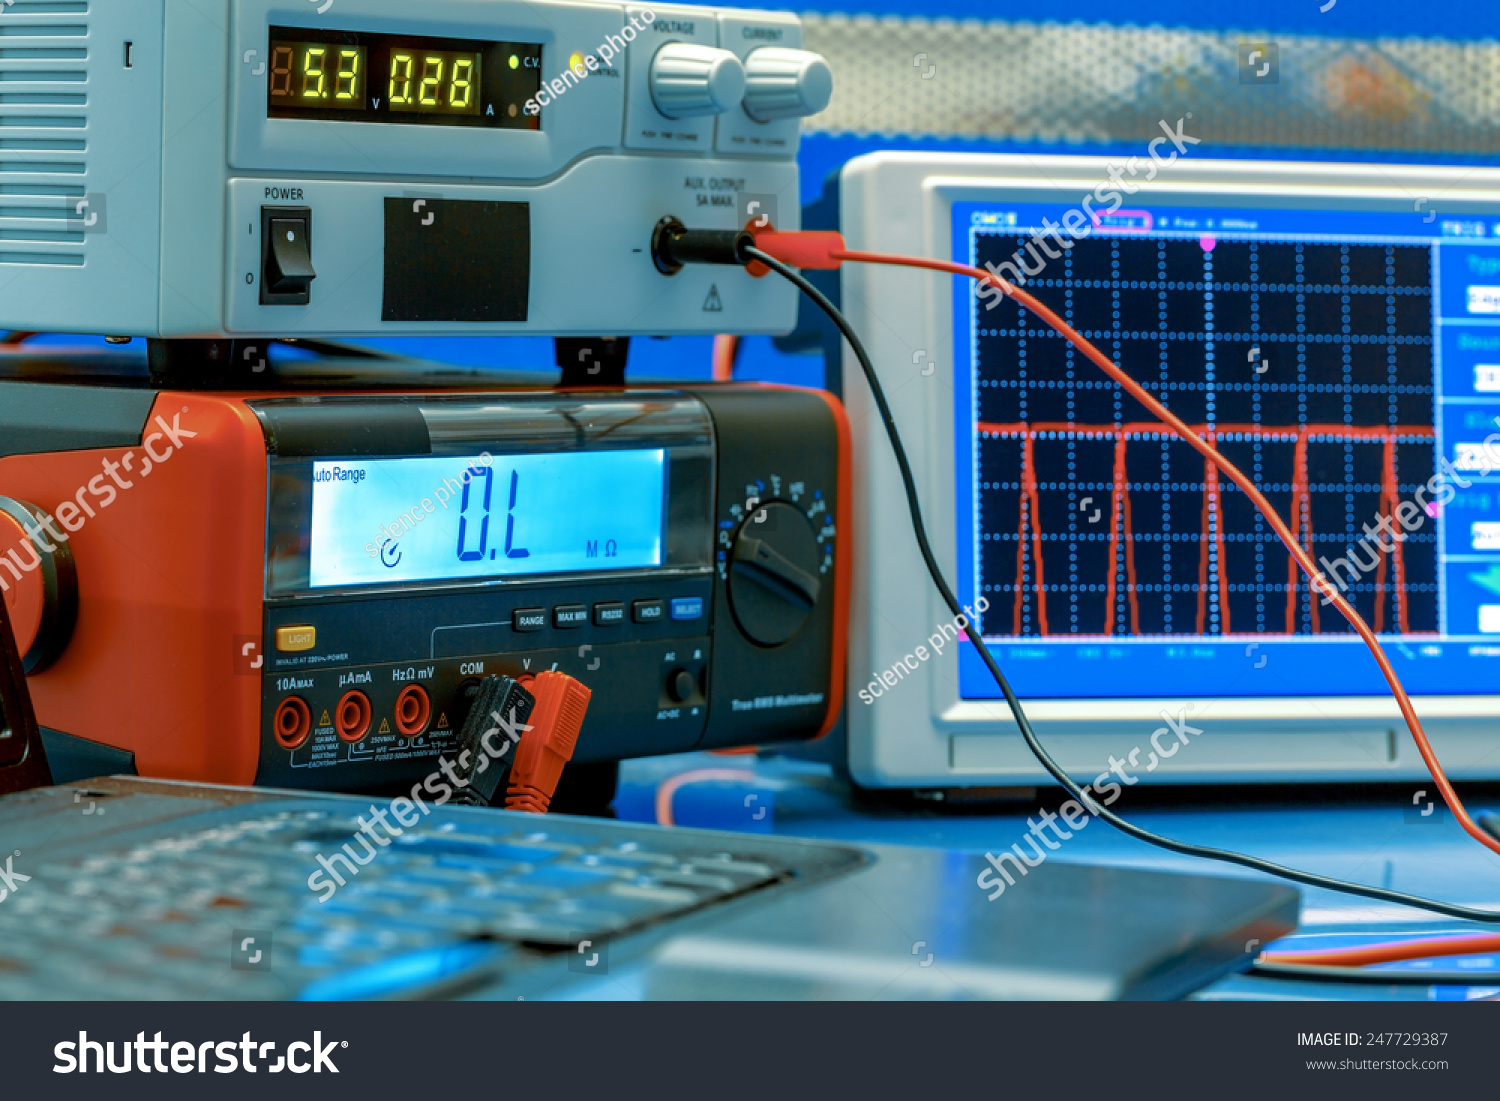 Electronic Lab Instruments : Electronic measuring instruments hitech computer